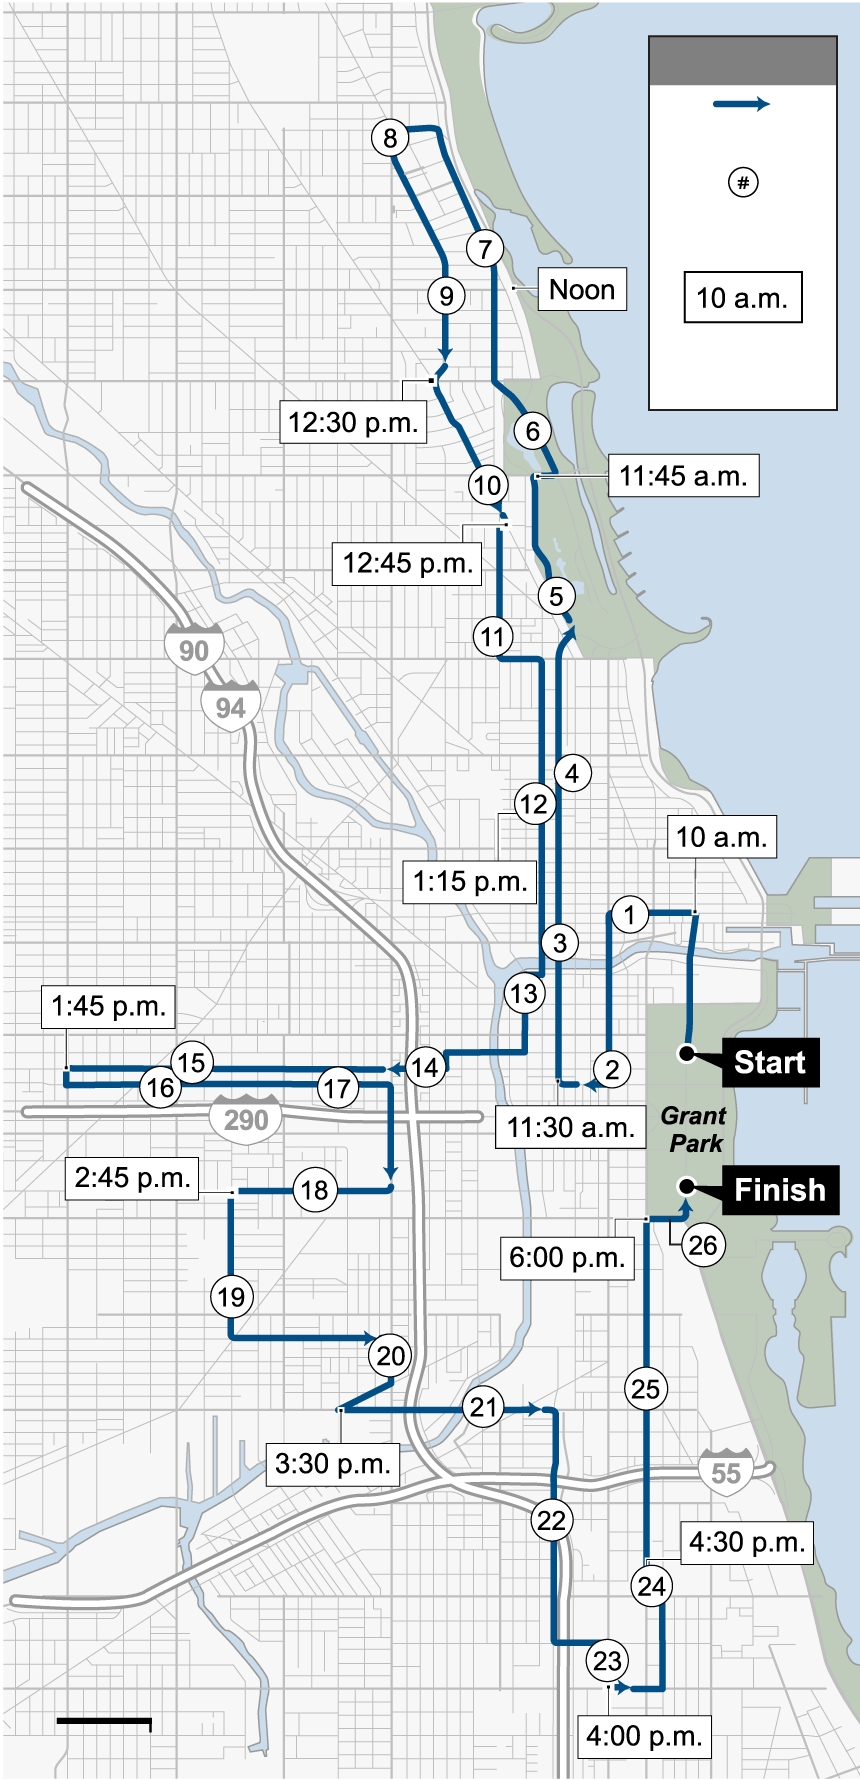 Chicago Marathon 2019: Course Map, Where To Watch The Race within Chicago Marathon 2019 Map